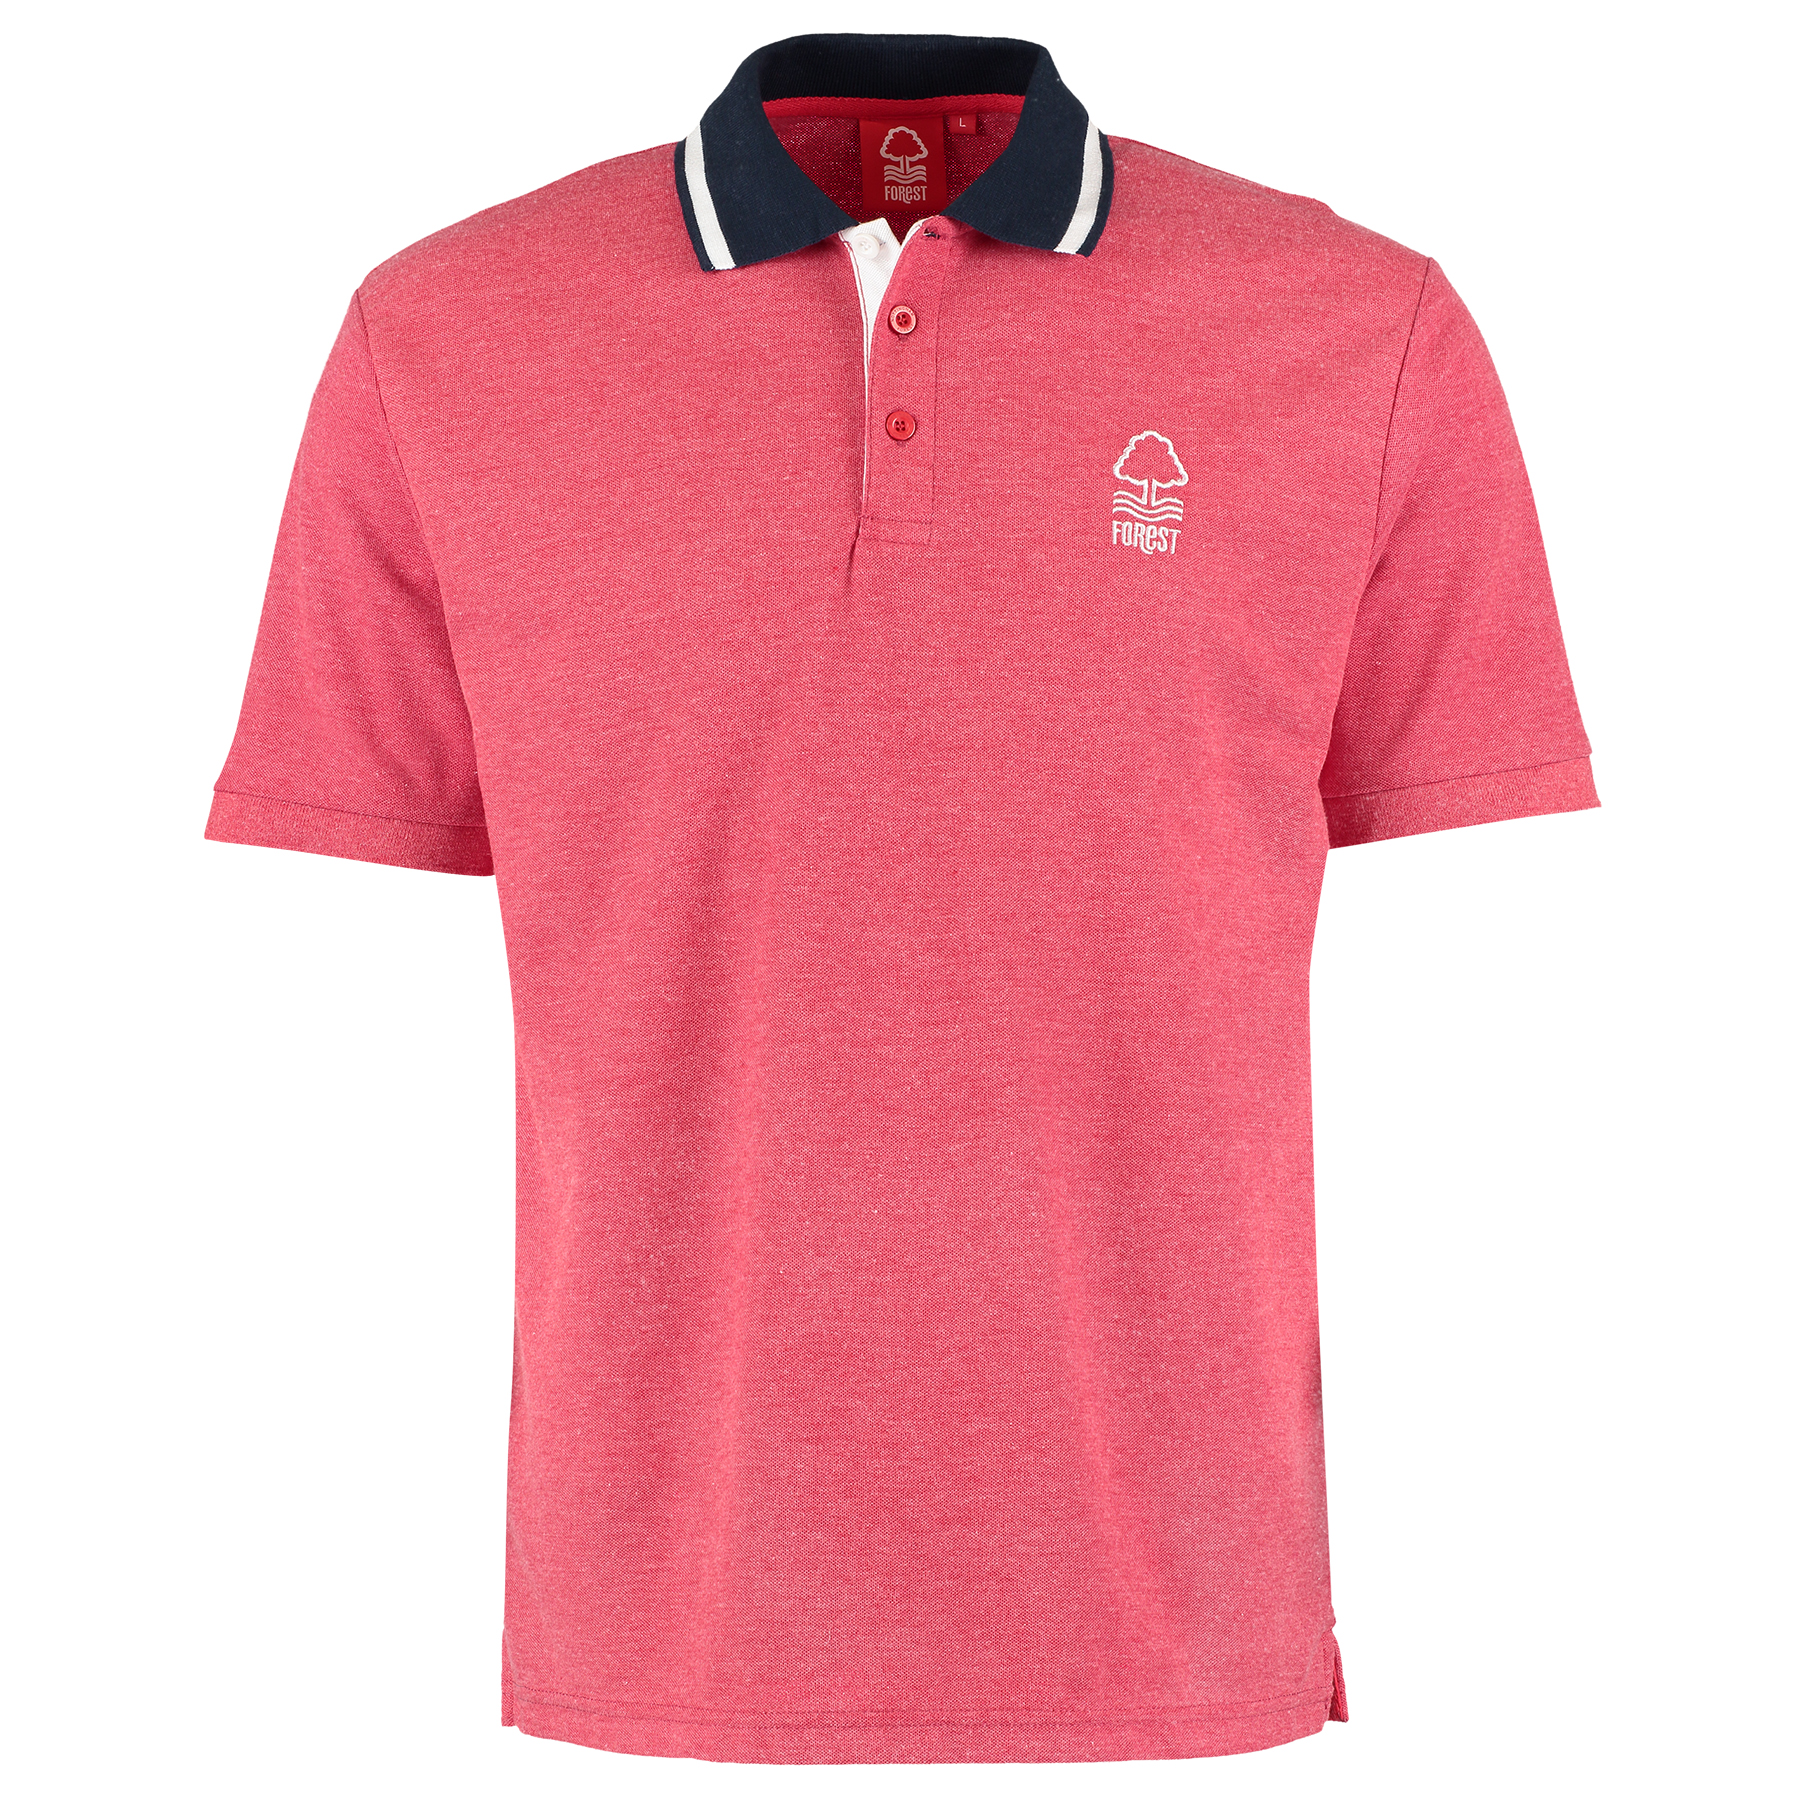 Nottingham Forest Essential Polo Shirt - Red Marl - Mens